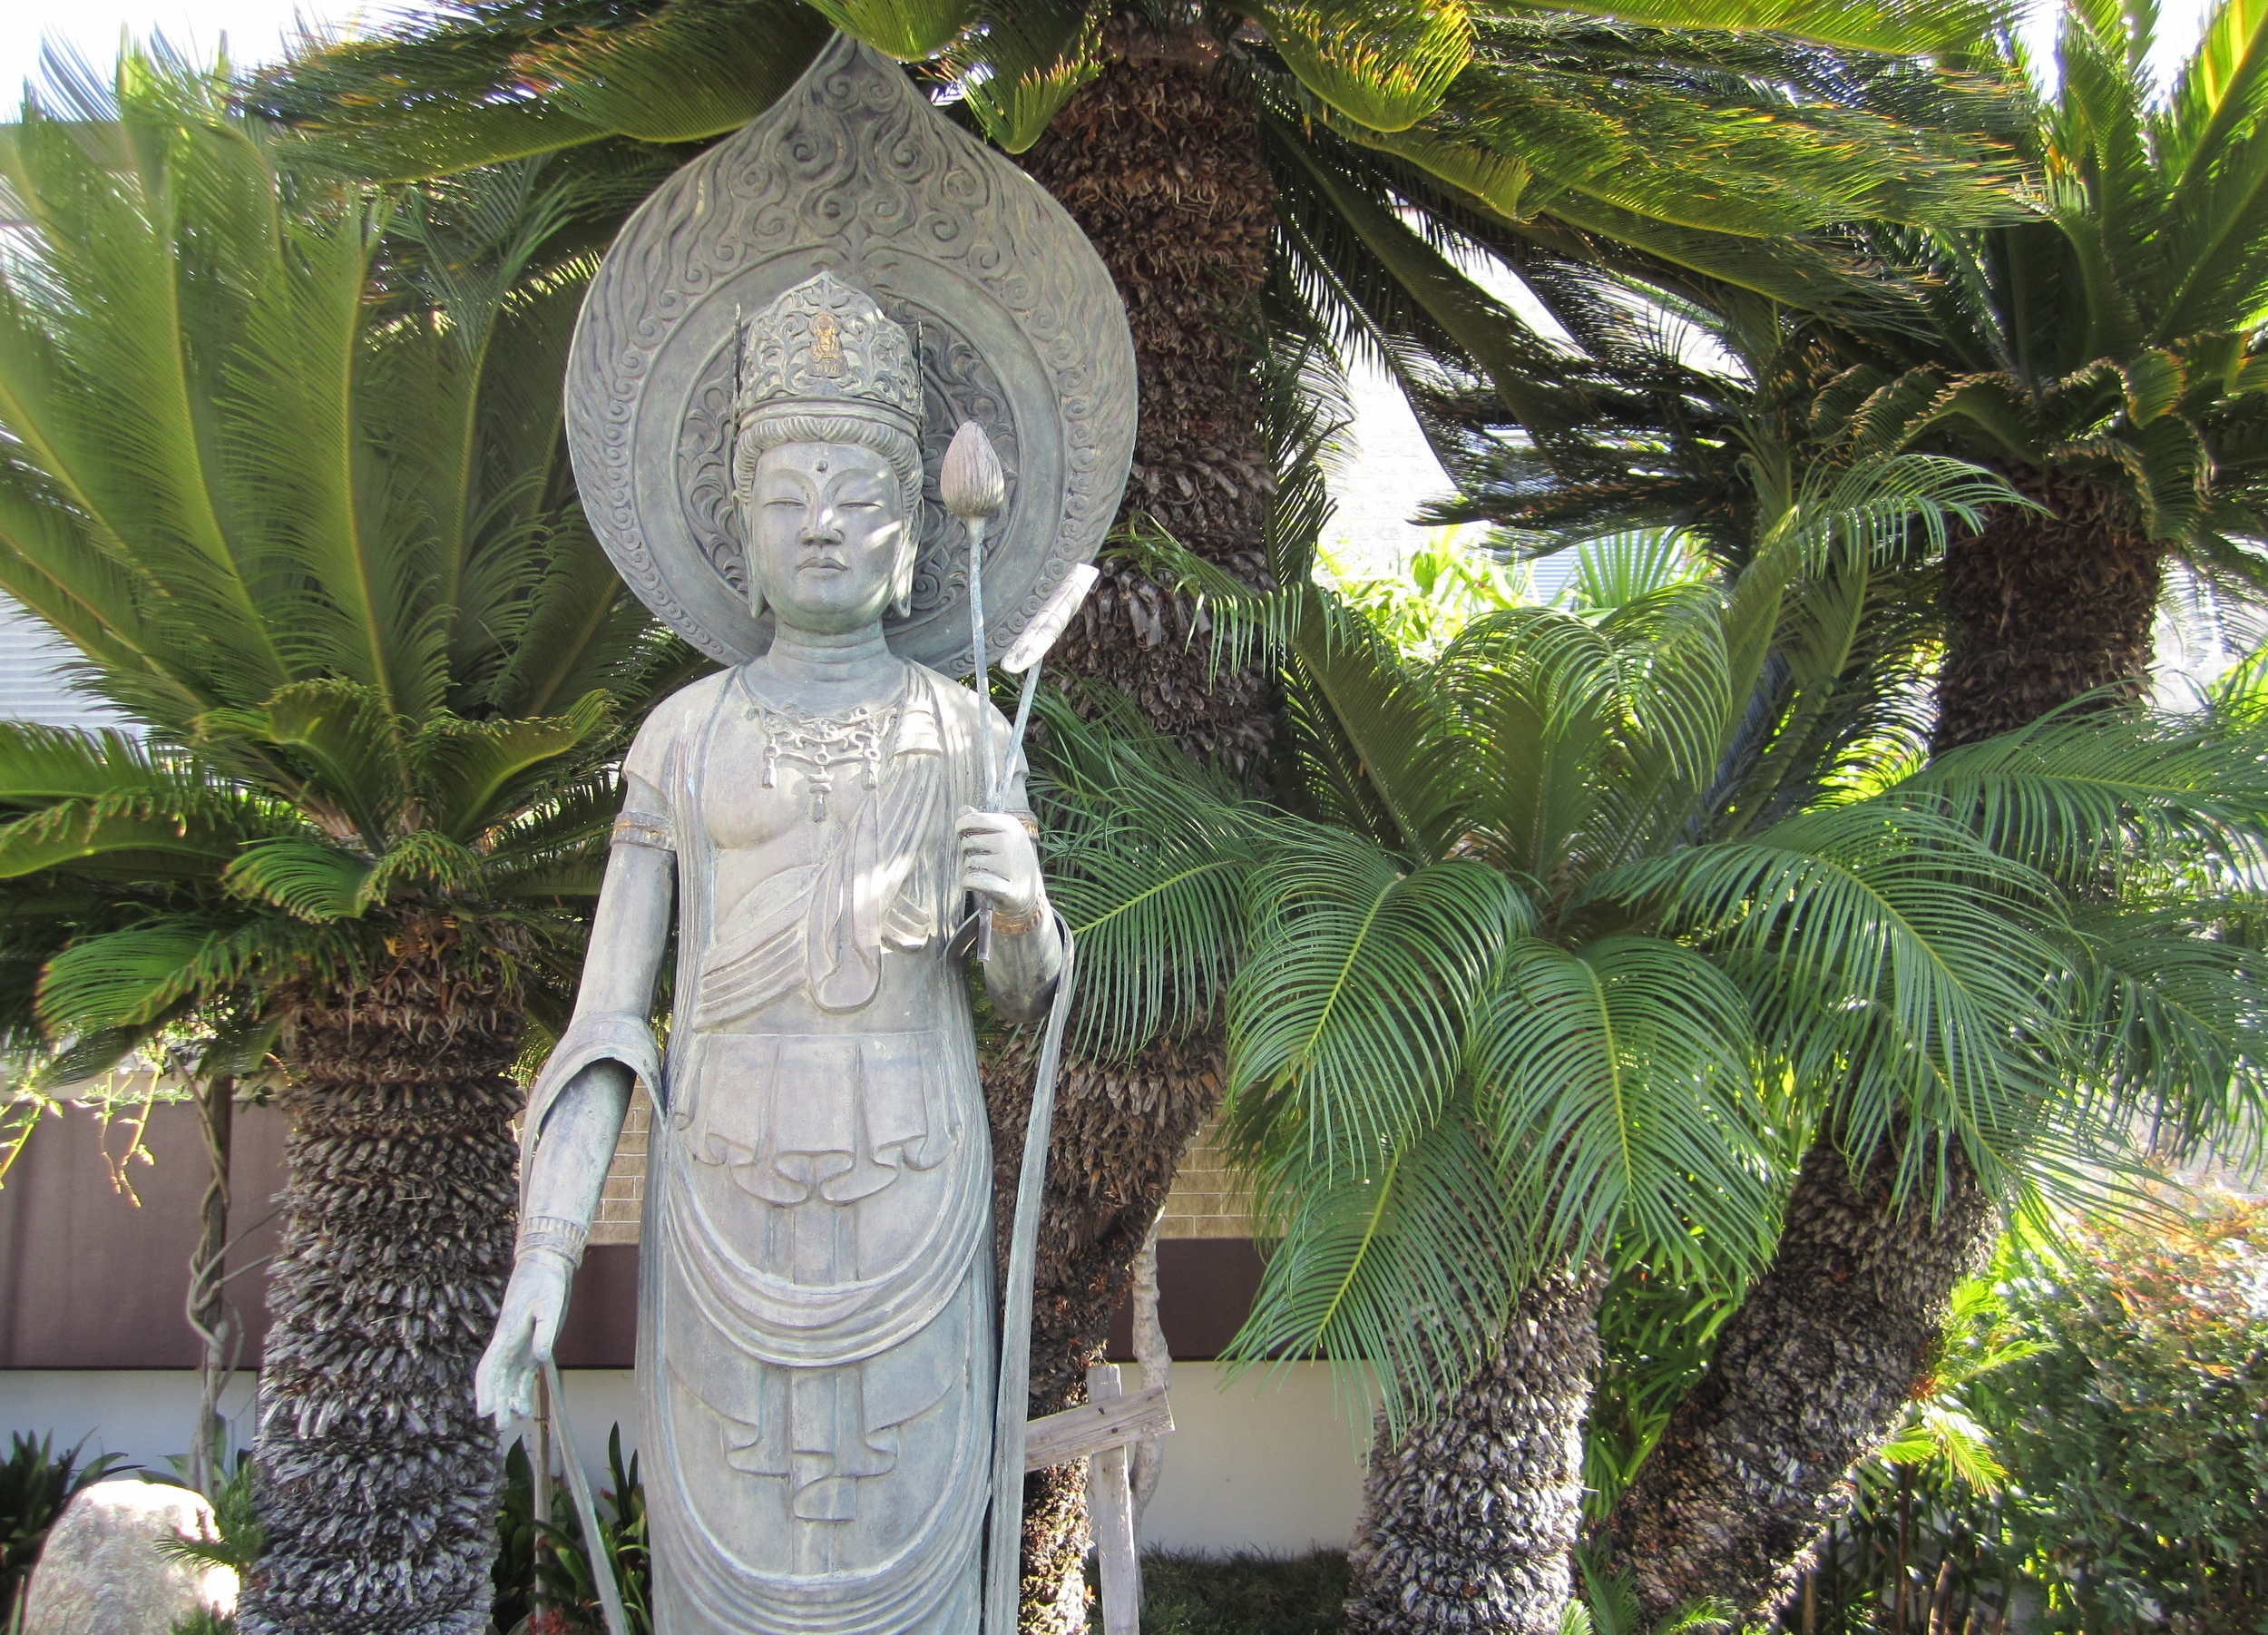 """Avalokitesvara, or  Kannon in Japan, is the bodhisattva of compassion """"the one who hears the cries of the world"""" this statue was a gift to the garden at Zenshuji Soto Mission in Los Angeles California, the oldest Soto Zen temple on the North American mainland..."""